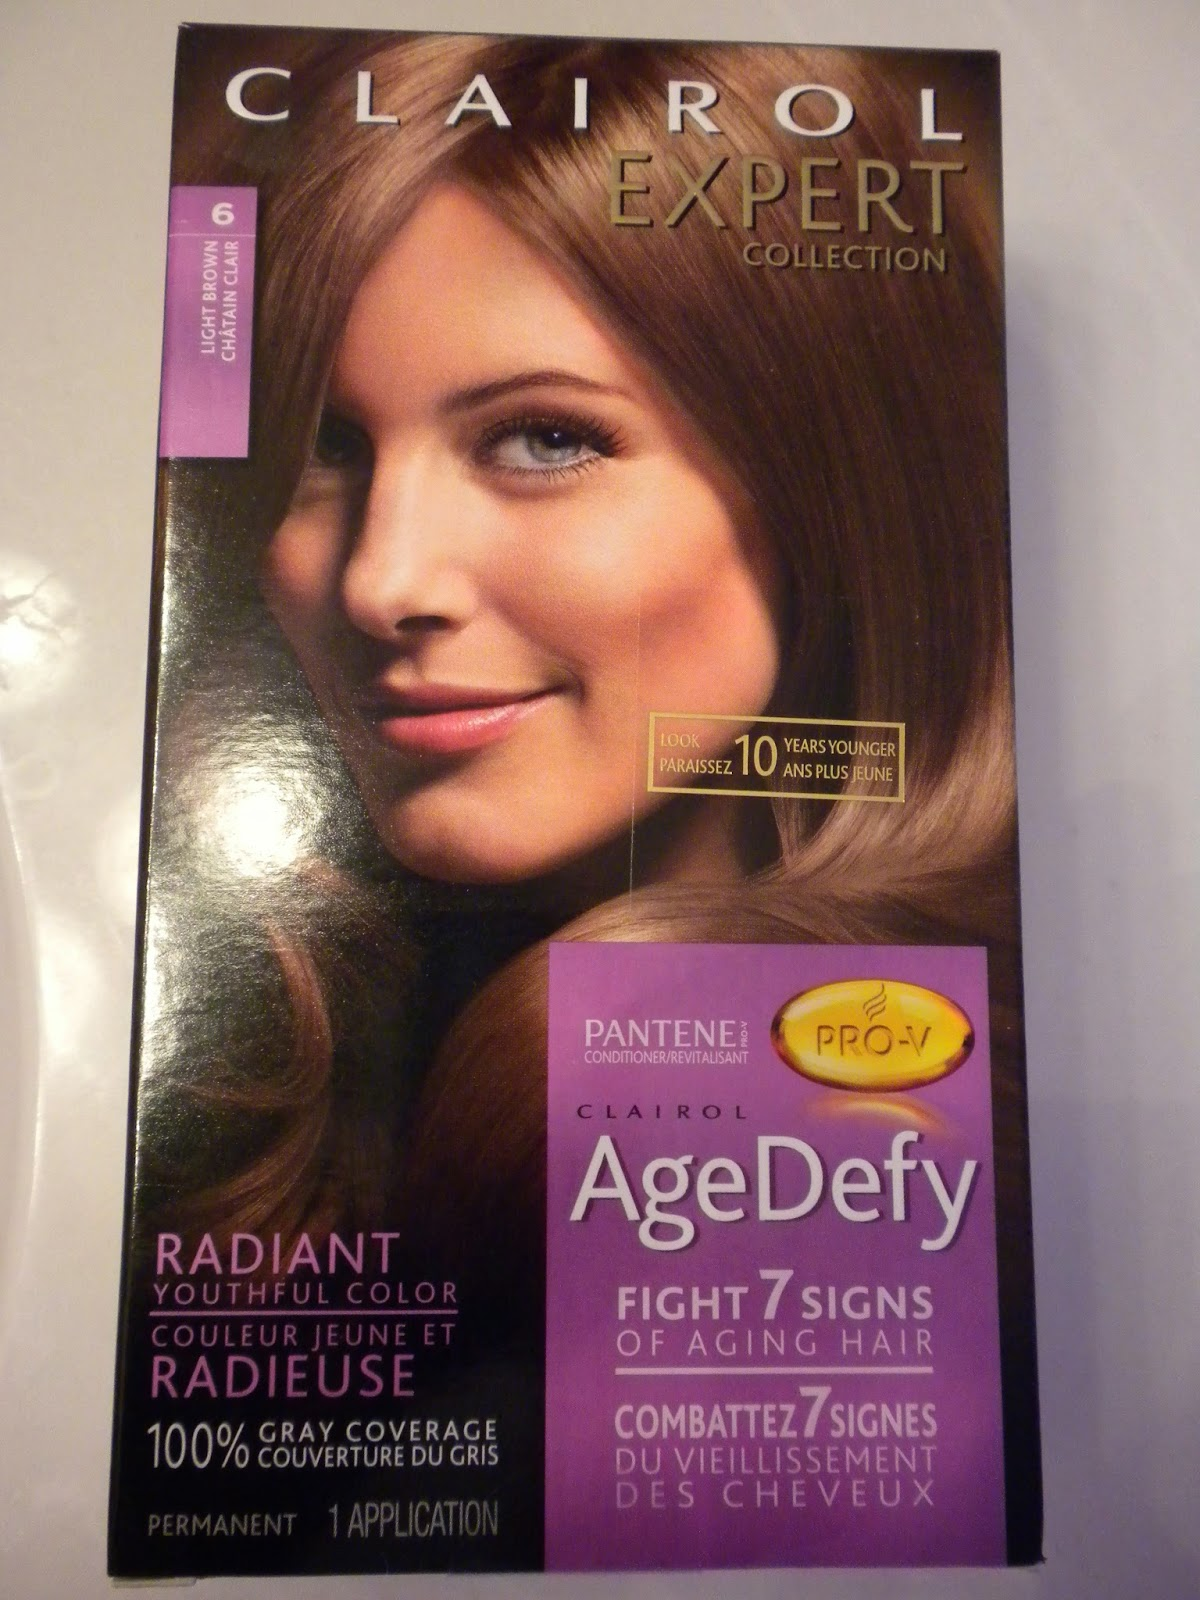 Clairol Expert Collection Age Defy - Product Review by Substance of Living